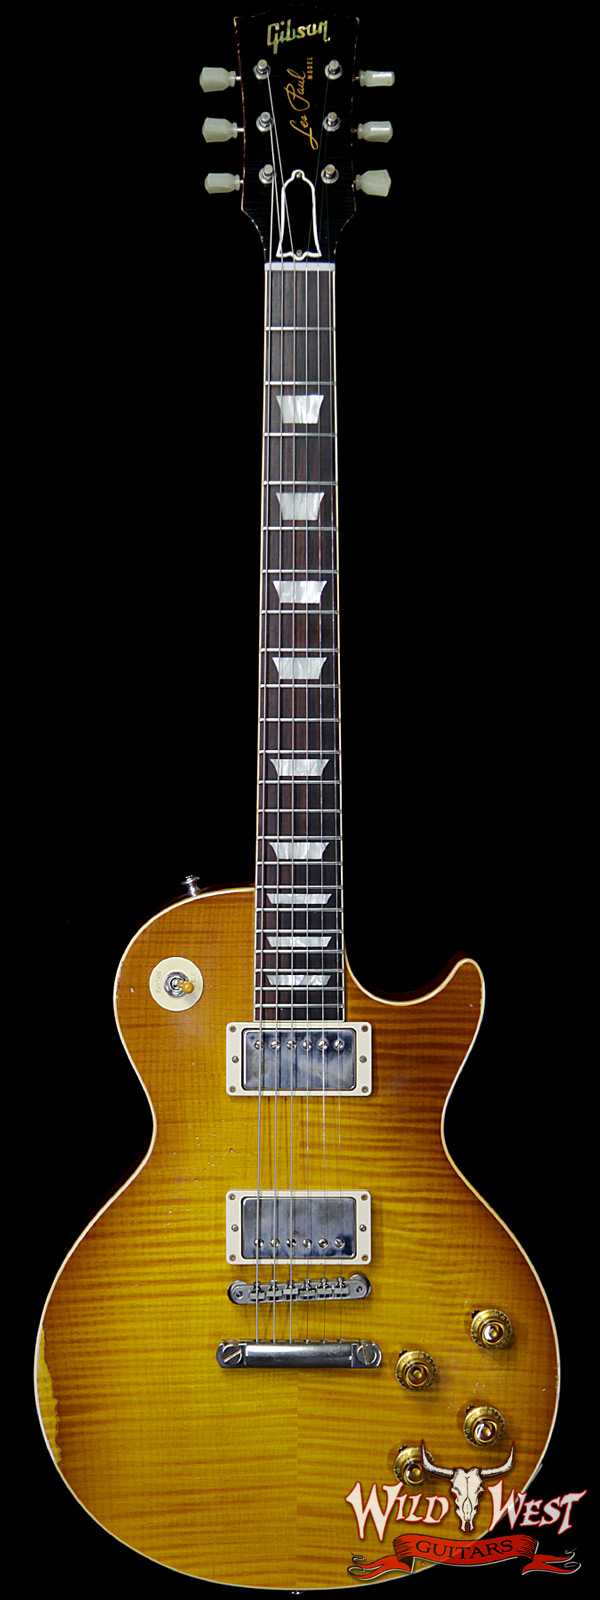 Gibson Custom Shop Historic 1959 Les Paul Aged Hand Selected Killer Top Brazilian Rosewood Board Honey Lemon Fade 8.05 LBS